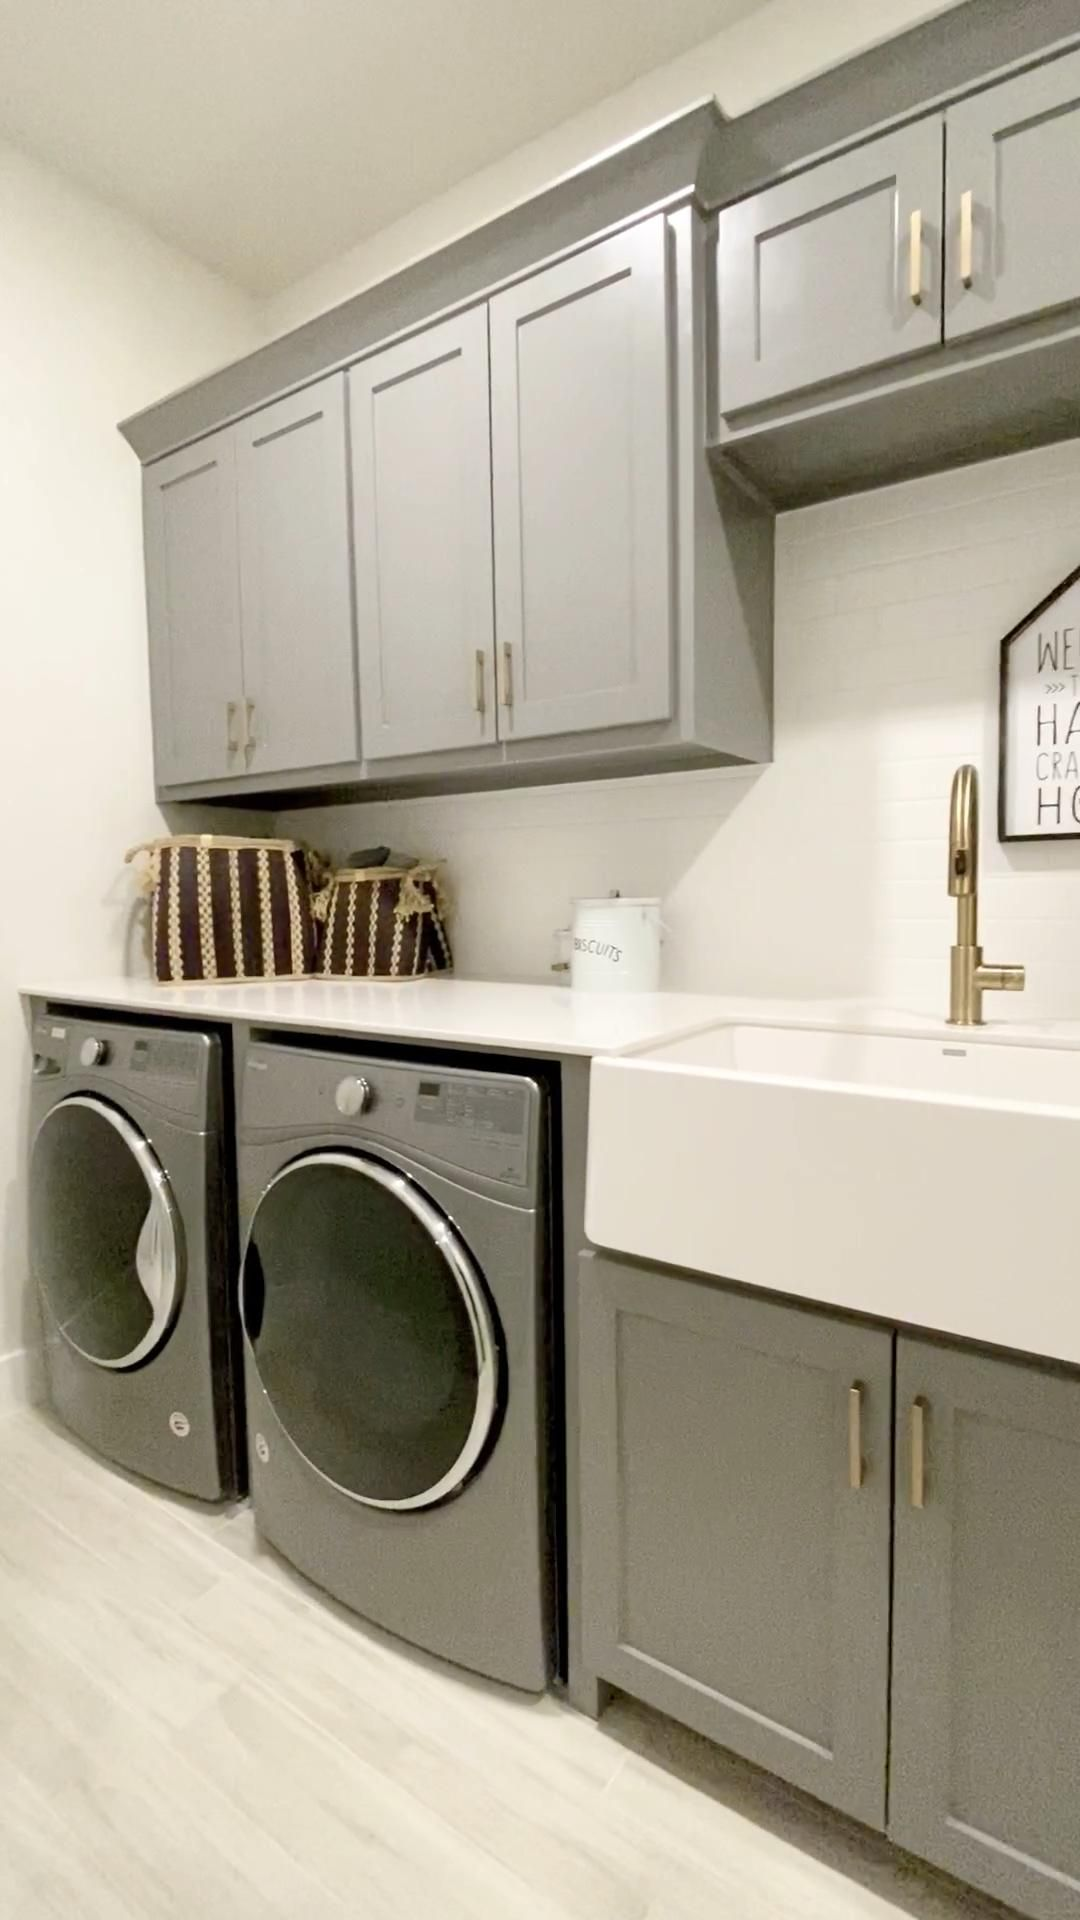 Laundry Room Ideas Discover Laundry Room With Gray Cabinets Gold Hardware Beautiful Utilit In 2020 Laundry Room Makeover Laundry Room Renovation Laundry Room Storage